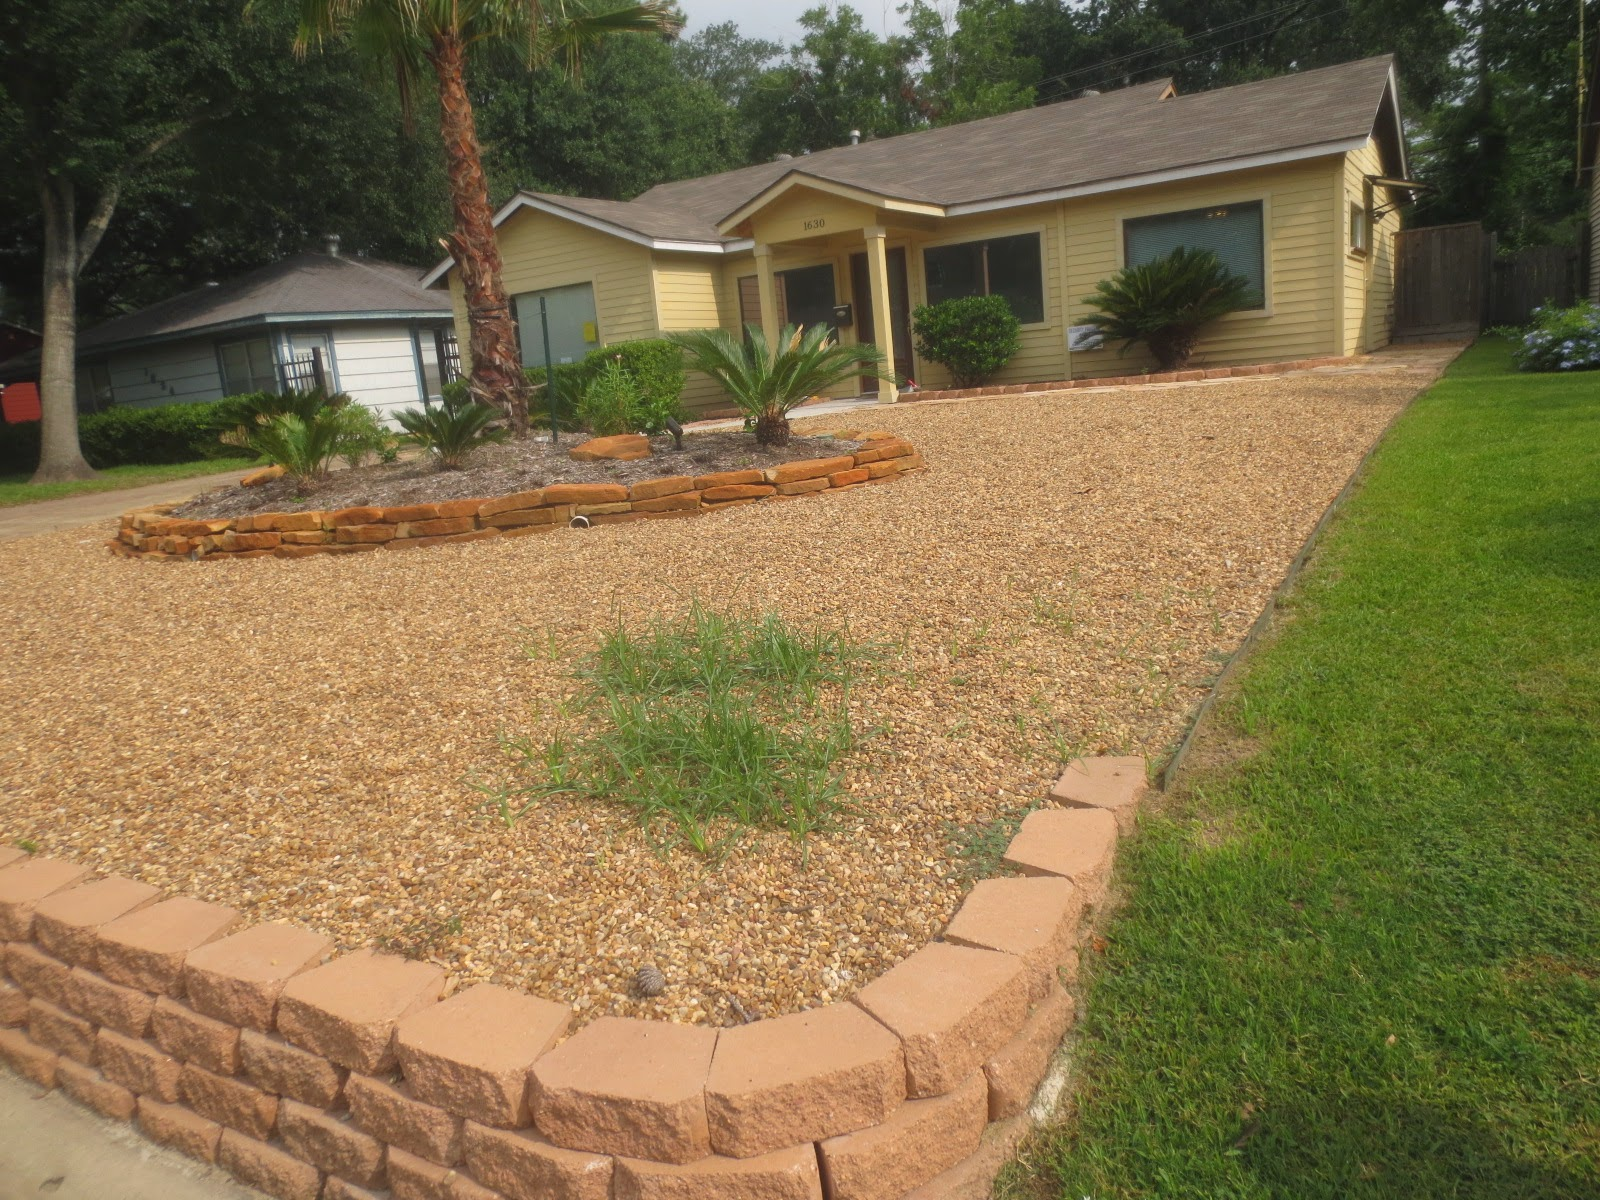 Tropical texana preventing yard wars boundary ideas when boundary ideas when philosophies differ workwithnaturefo